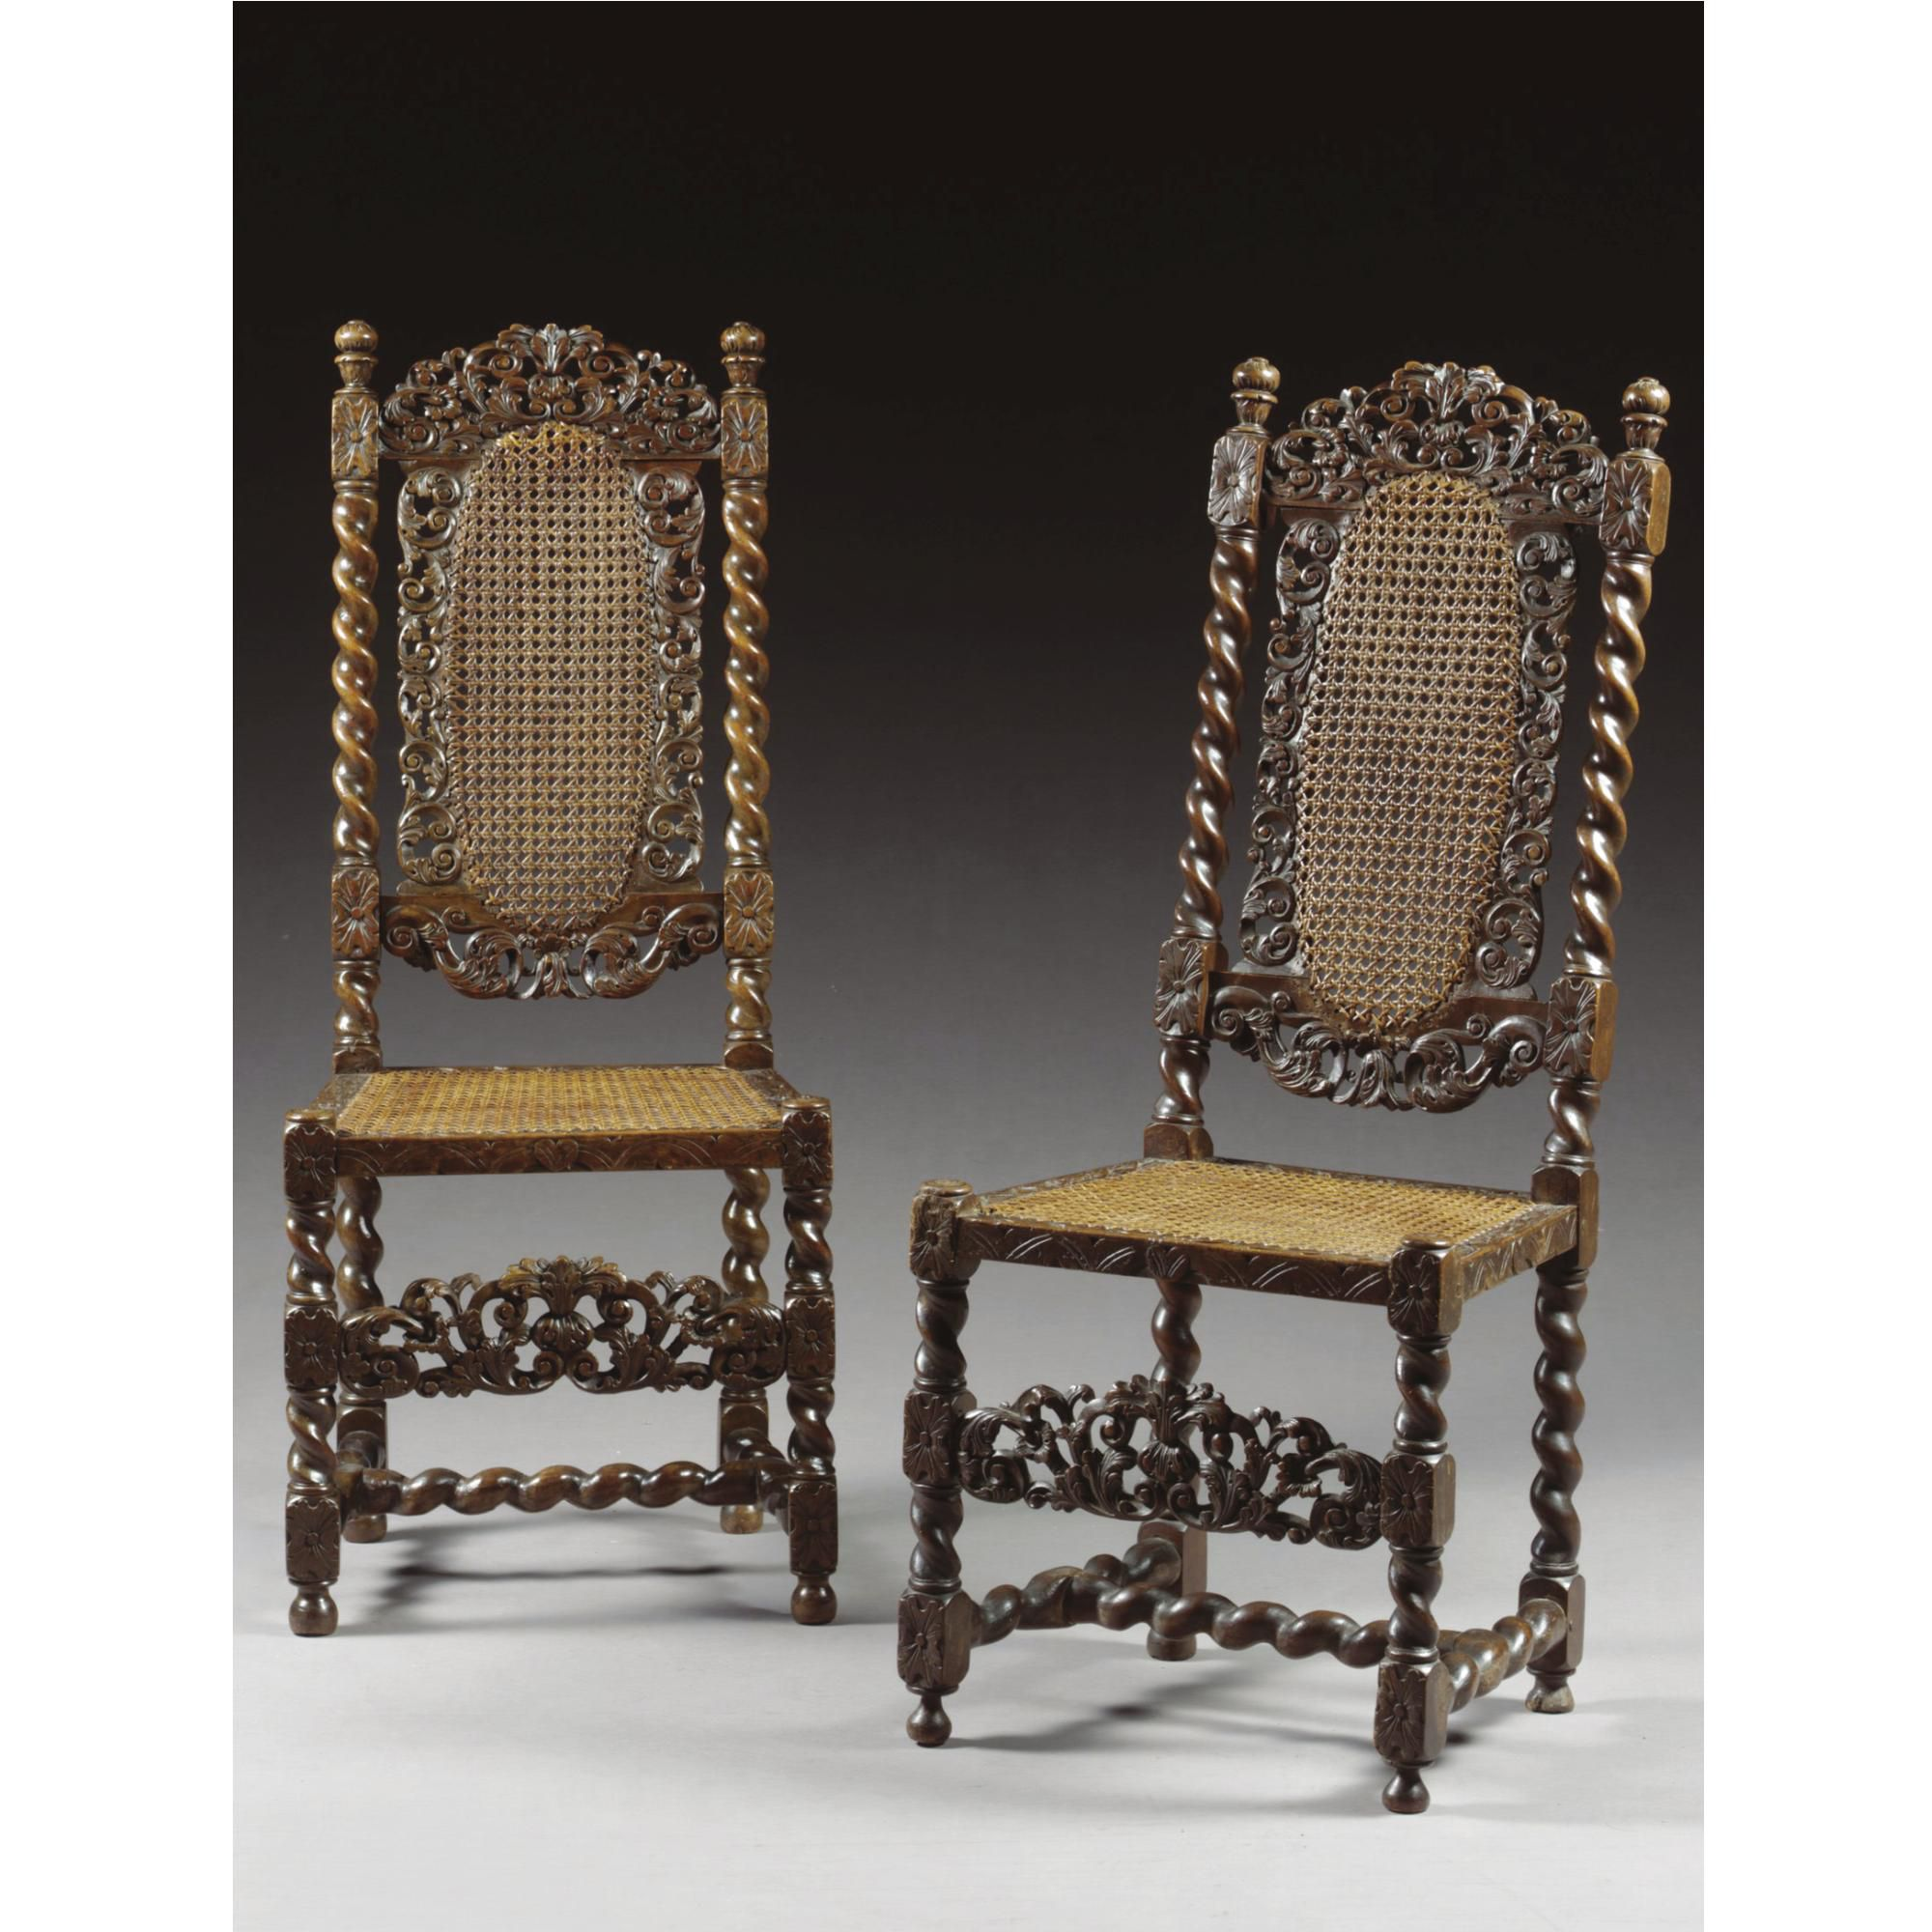 Chair table 17th century - A Pair Of Chairs William And Mary Late 17th Century Walnut And Cane